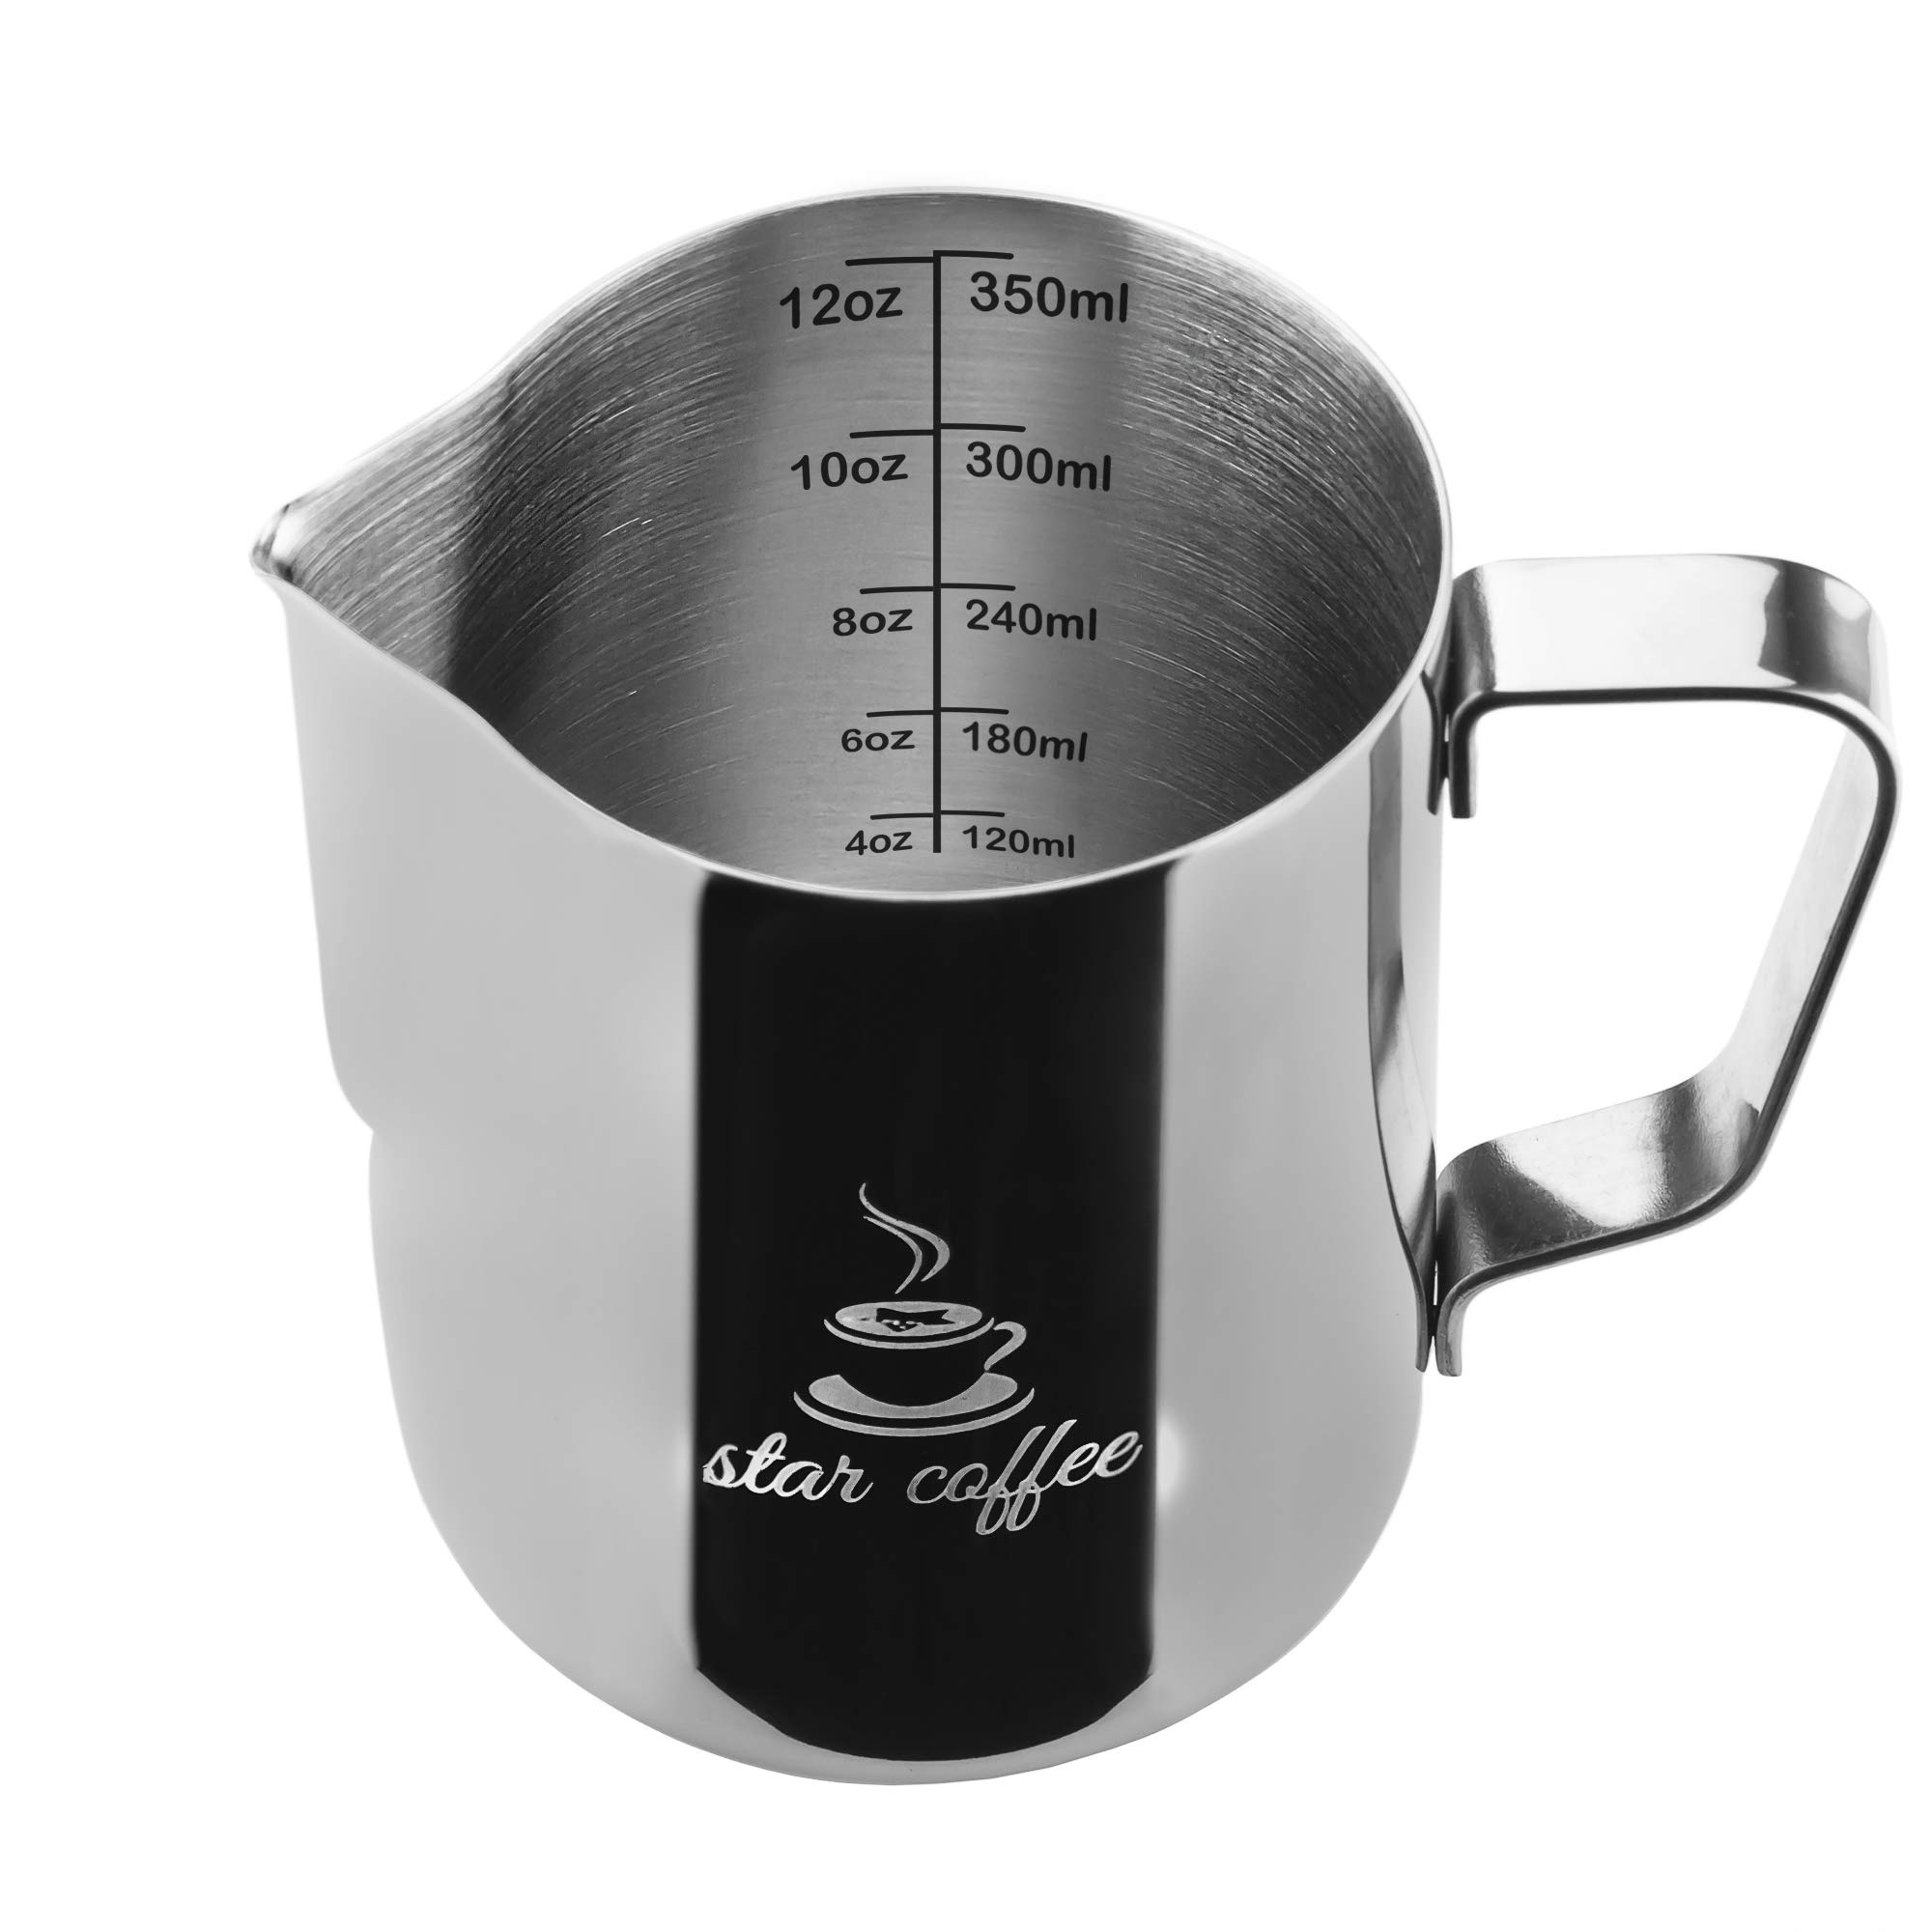 Star Coffee 12, 20 or 32oz Stainless Steel Milk Frothing Pitcher - Measurements on Both Sides Inside Plus eBook & Microfiber Cloth - Perfect for Espresso Machines, Milk Frothers, Latte Art by Star Coffee